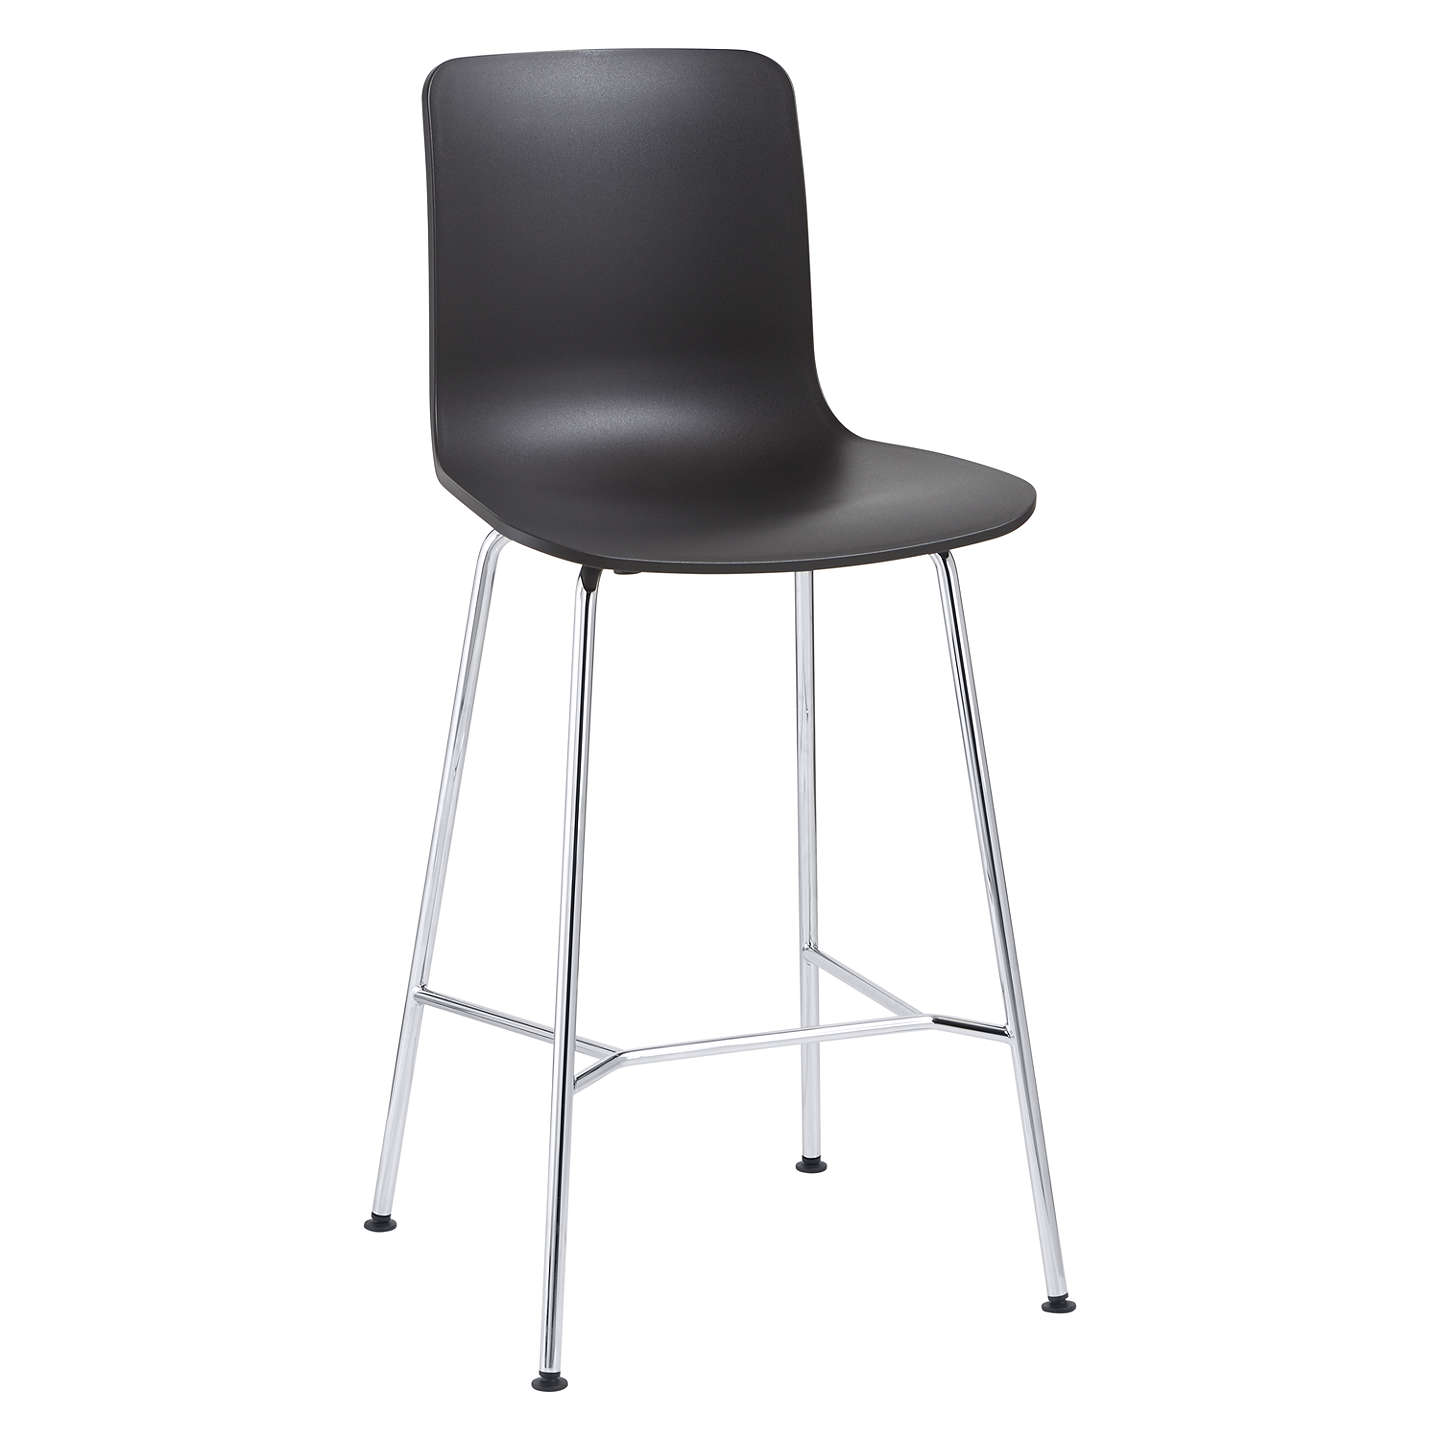 vitra hal bar chair basic dark at john lewis. Black Bedroom Furniture Sets. Home Design Ideas